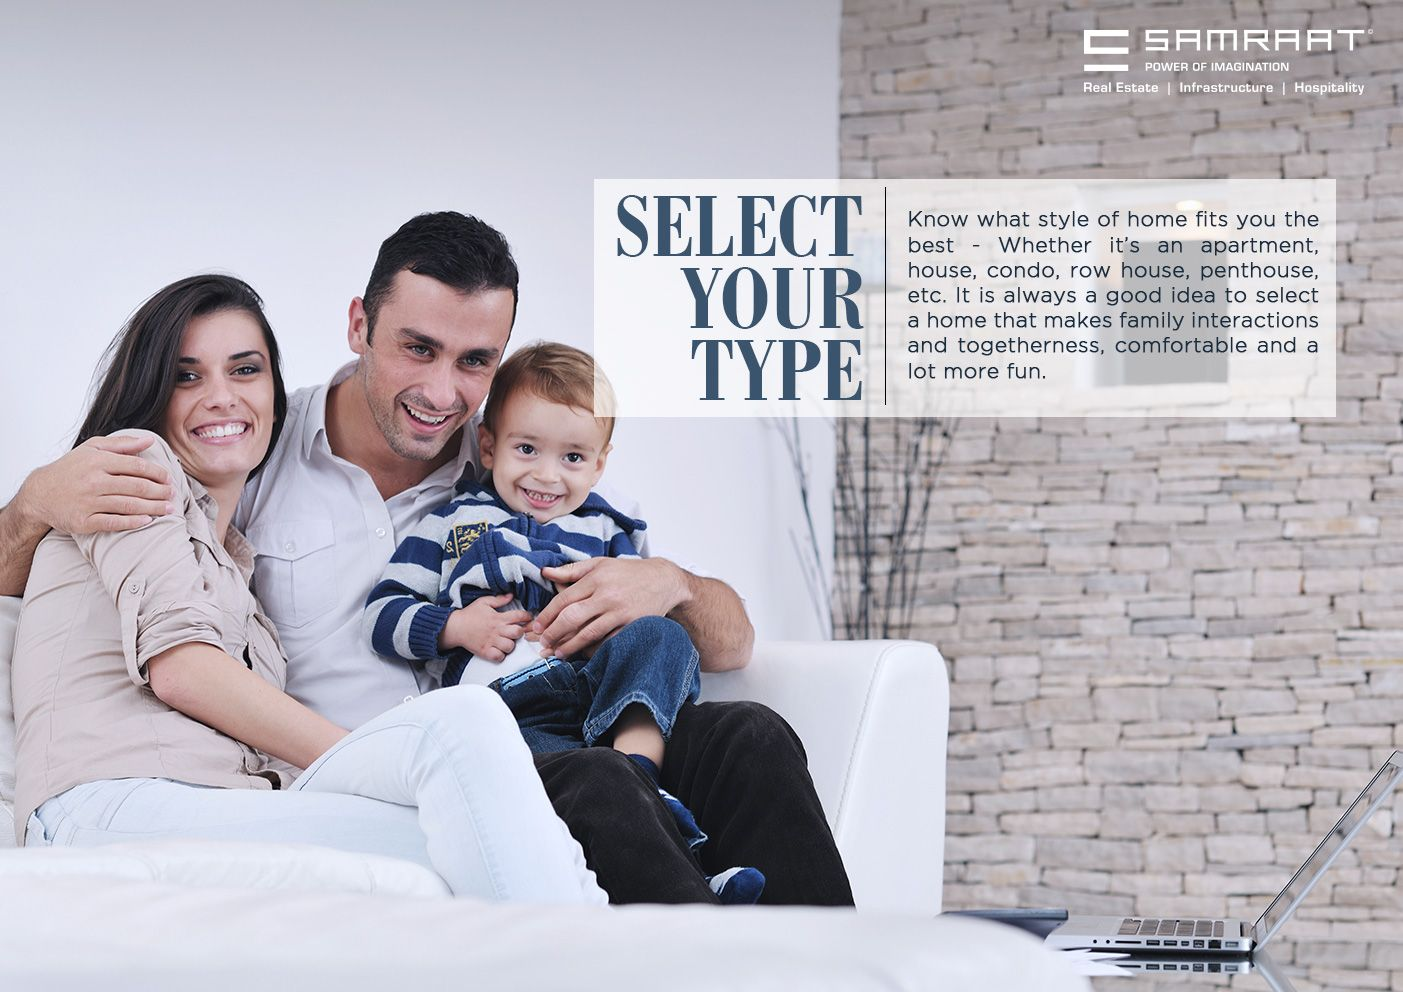 Samraat Group  SELECT YOUR TYPE - Know what style of home fits you the best -- Whether it's an apartment, house, condo, row house, penthouse, etc. It is always a good idea to select a home that makes family interactions and togetherness, comfortable and a lot more fun.   www.samraatgroup.com/  #SamraatGroup #RealEstate #Nashik